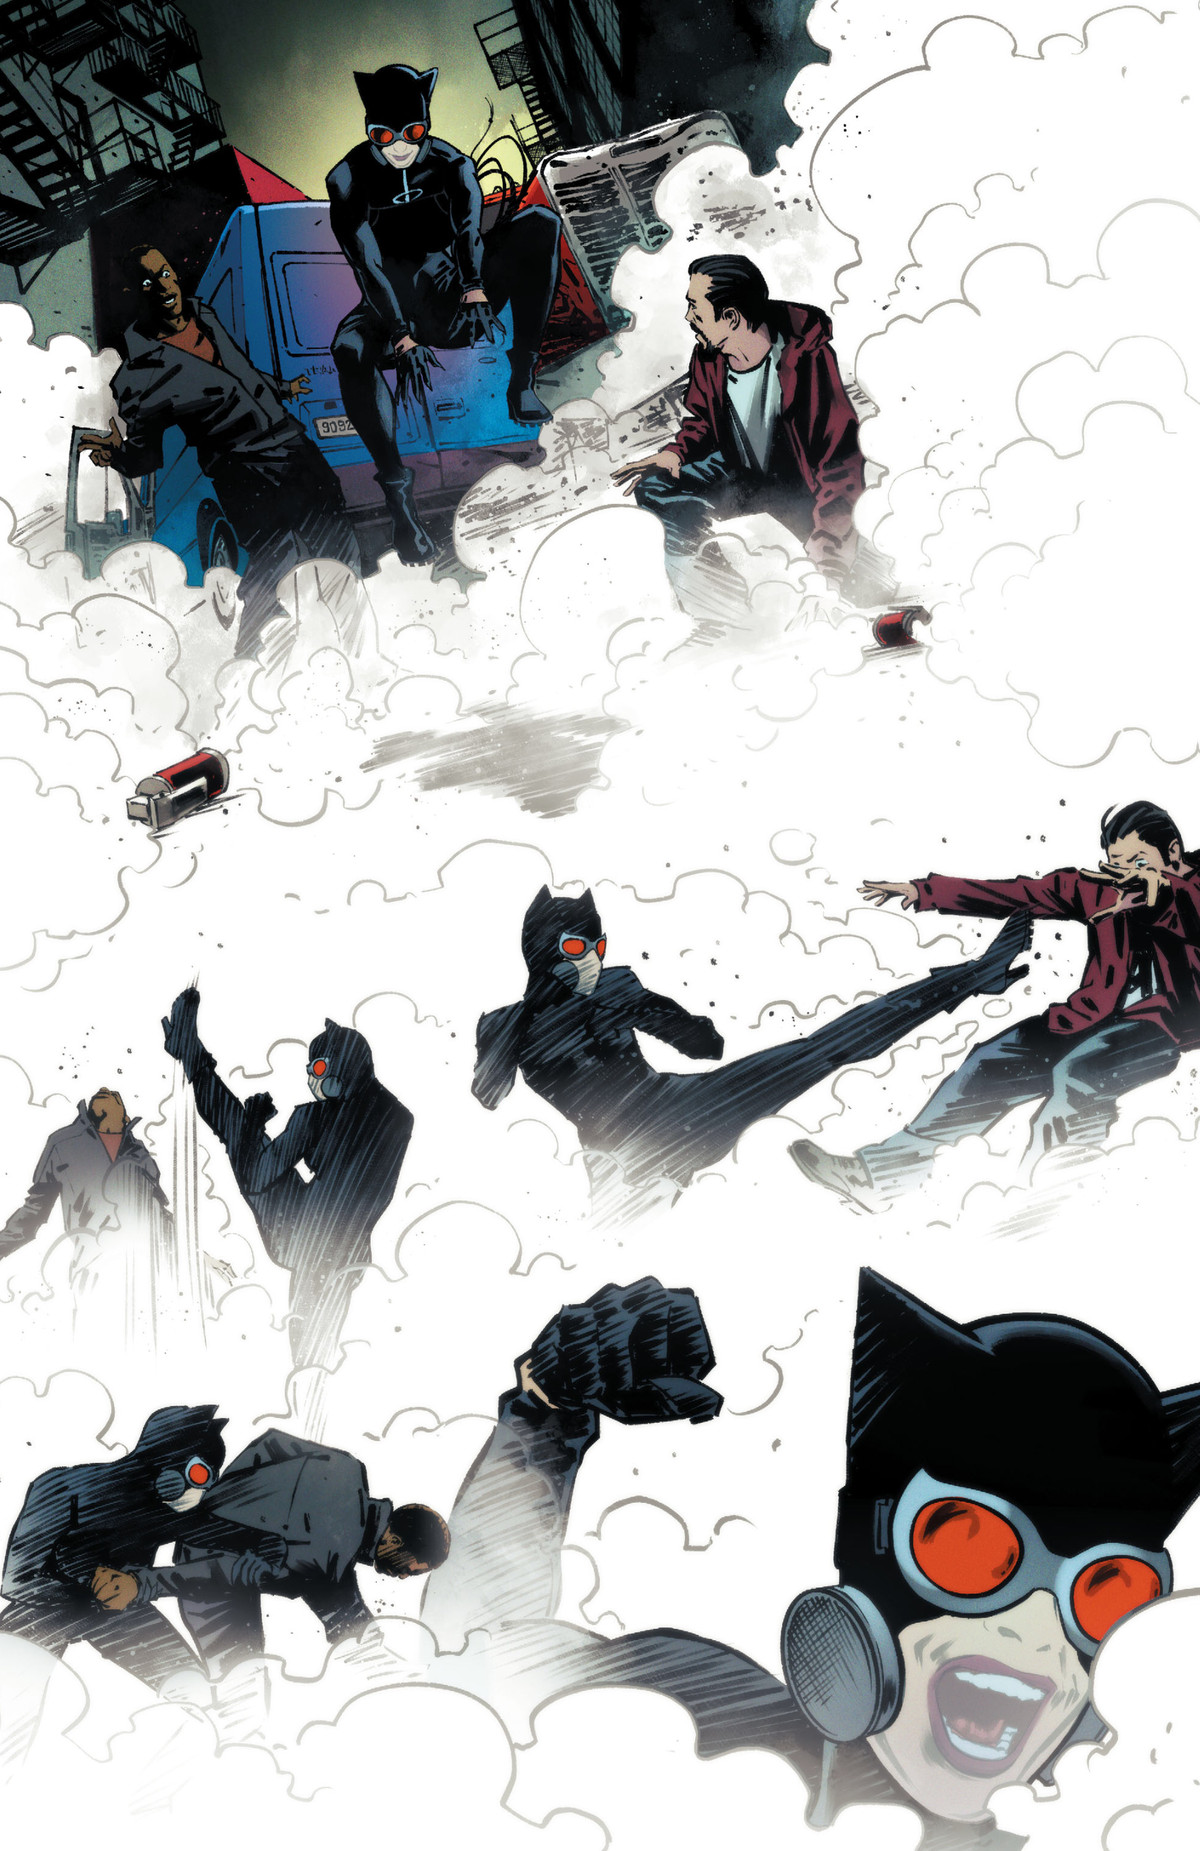 Wearing a gas mask, Catwoman throws down two smoke bombs and takes out a group of men, hand to hand, in Catwoman #27, DC Comics (2020).